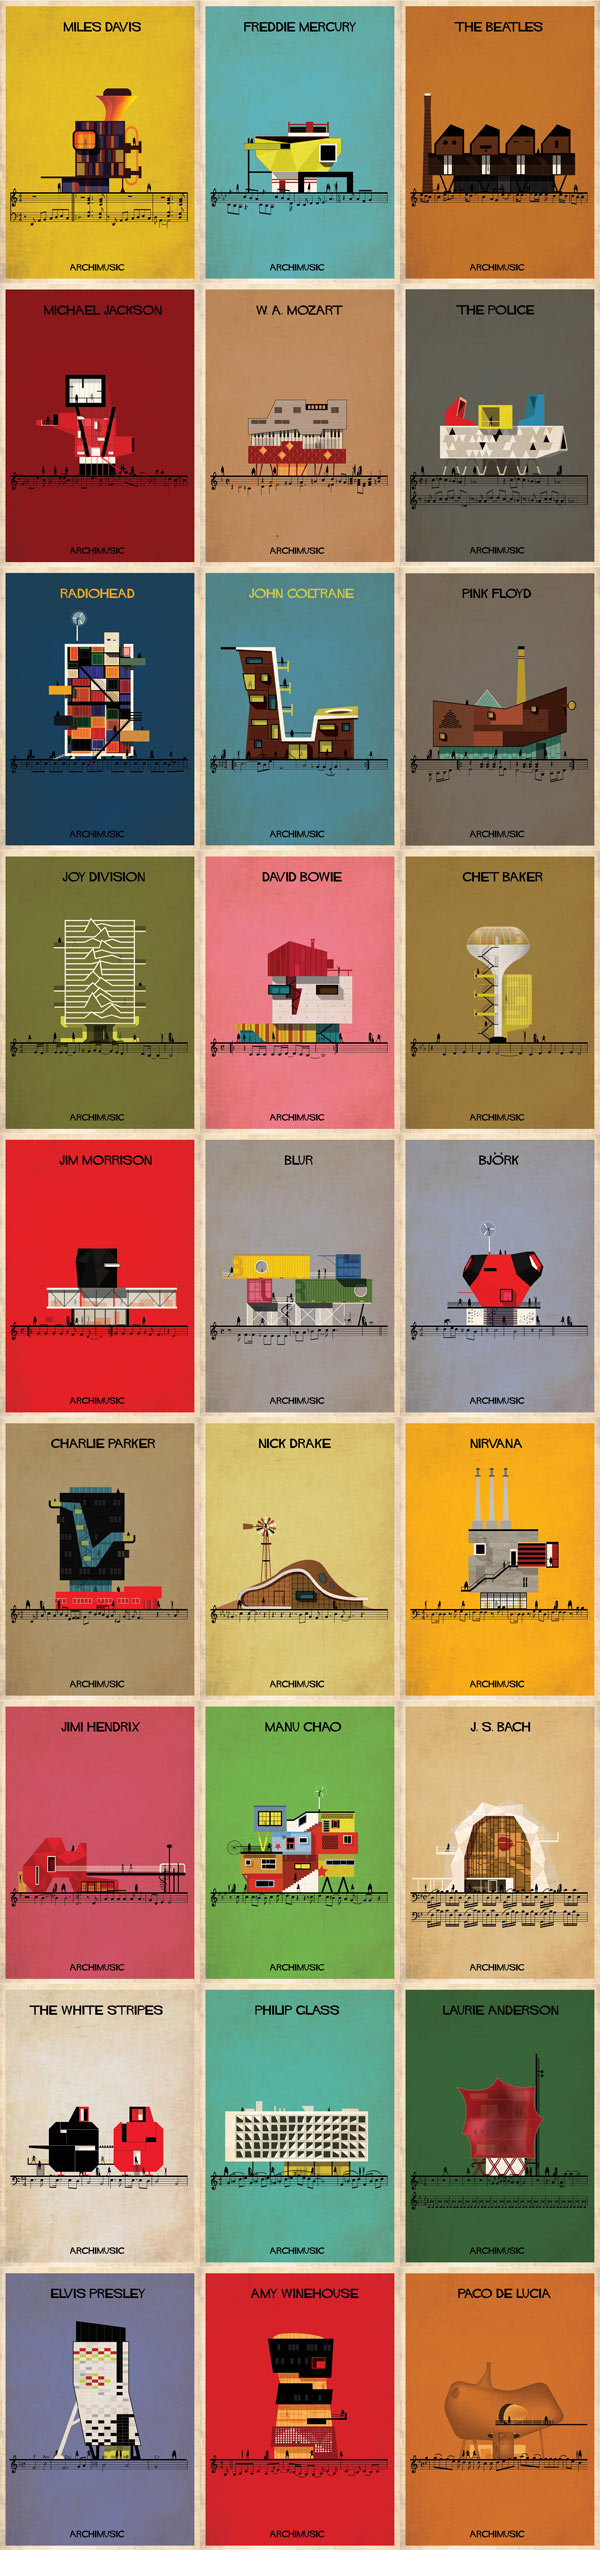 Archimusic Posters by Federico Babina